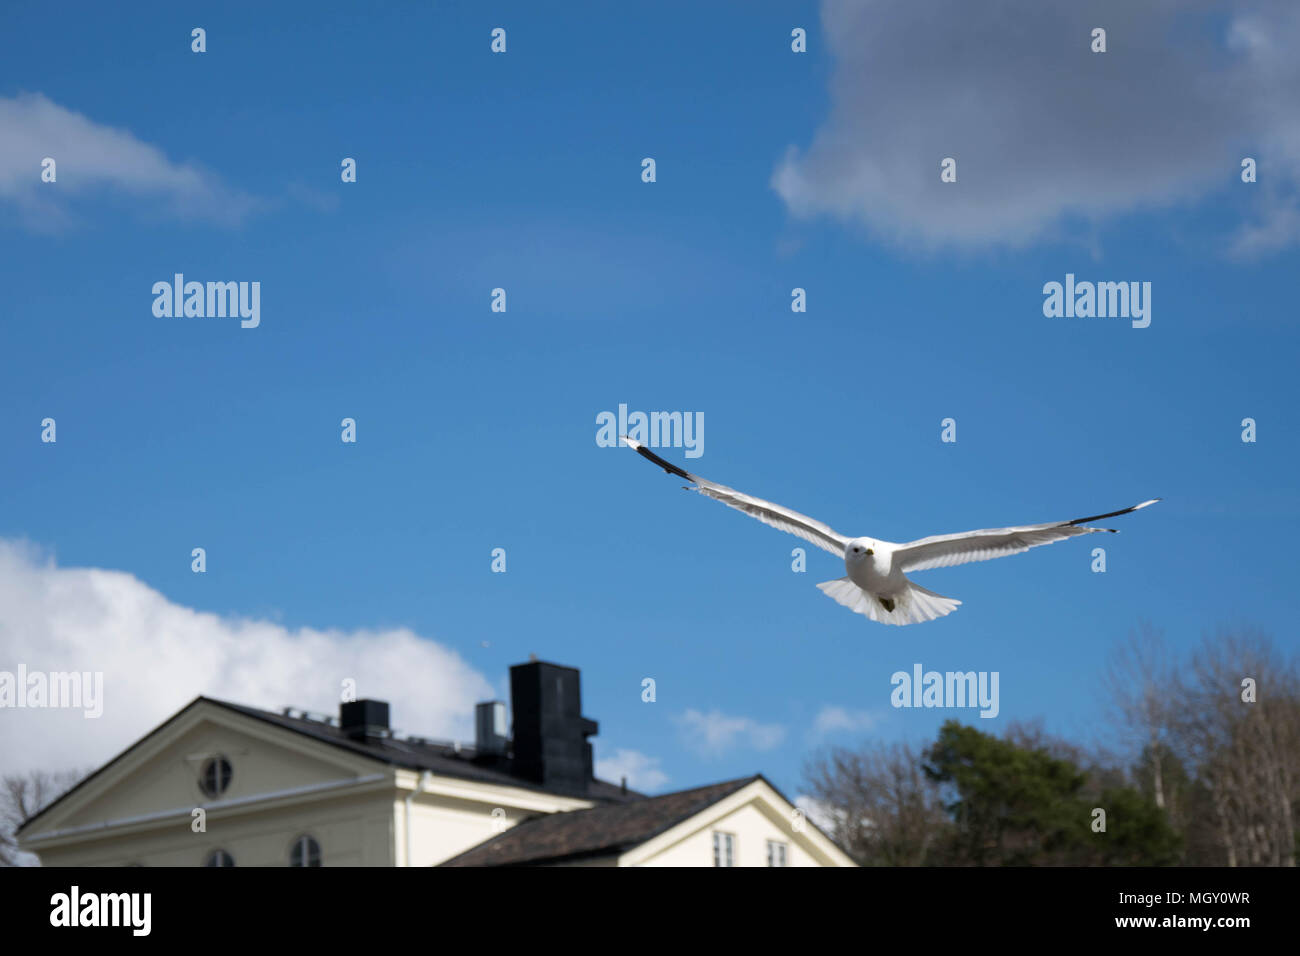 Flying seagull. Taken with Nikon D5300 - Stock Image